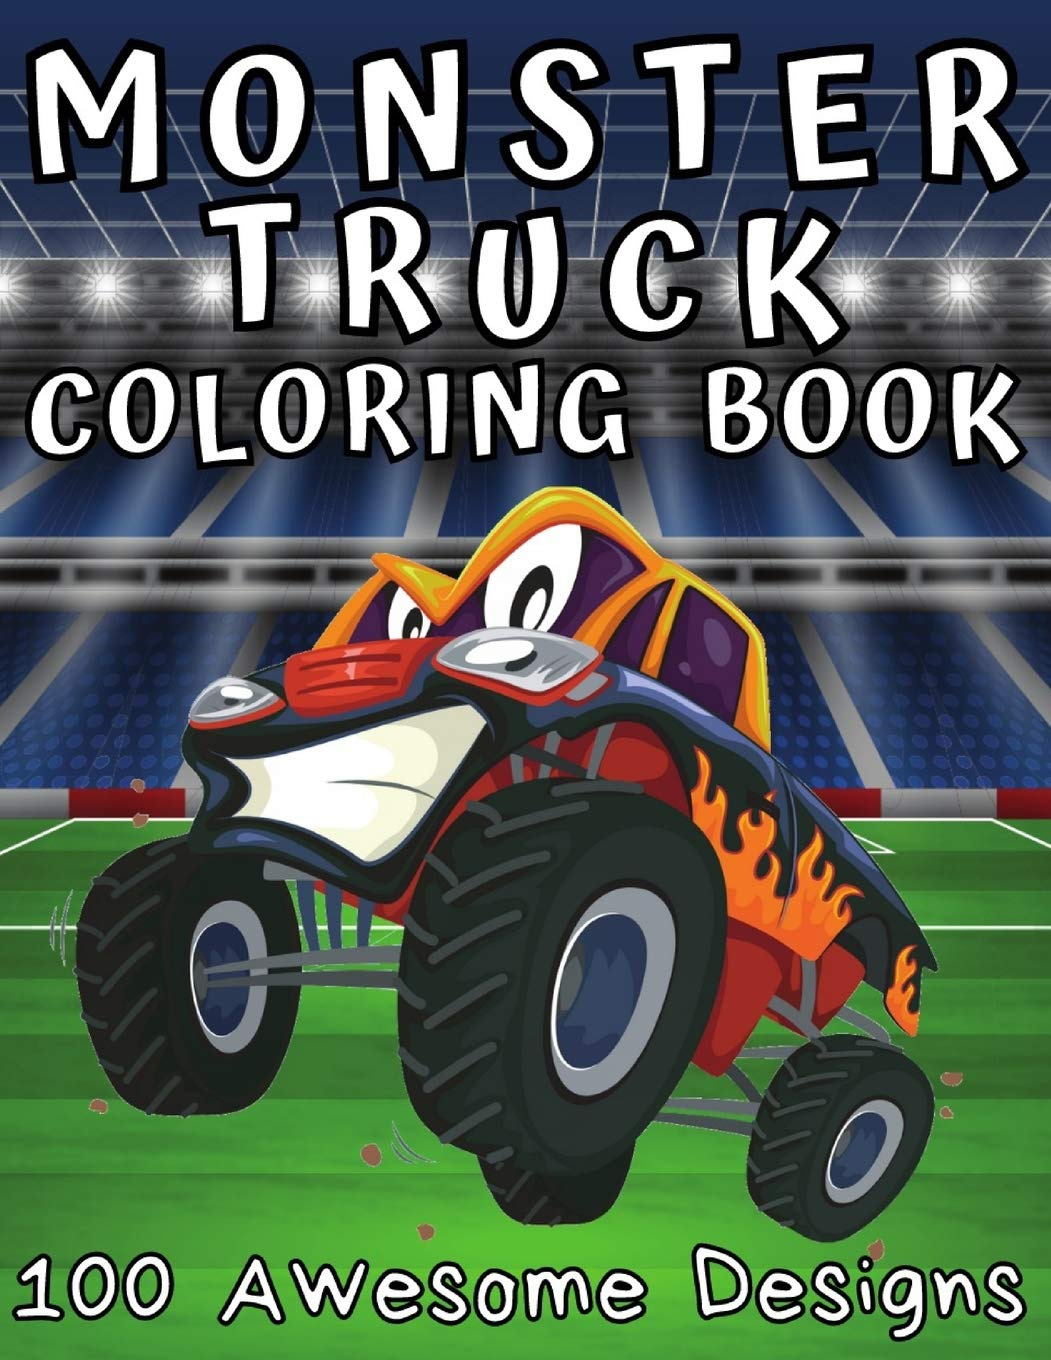 Monster Truck Coloring Book 18 Awesome Designs Coloring Book For ...